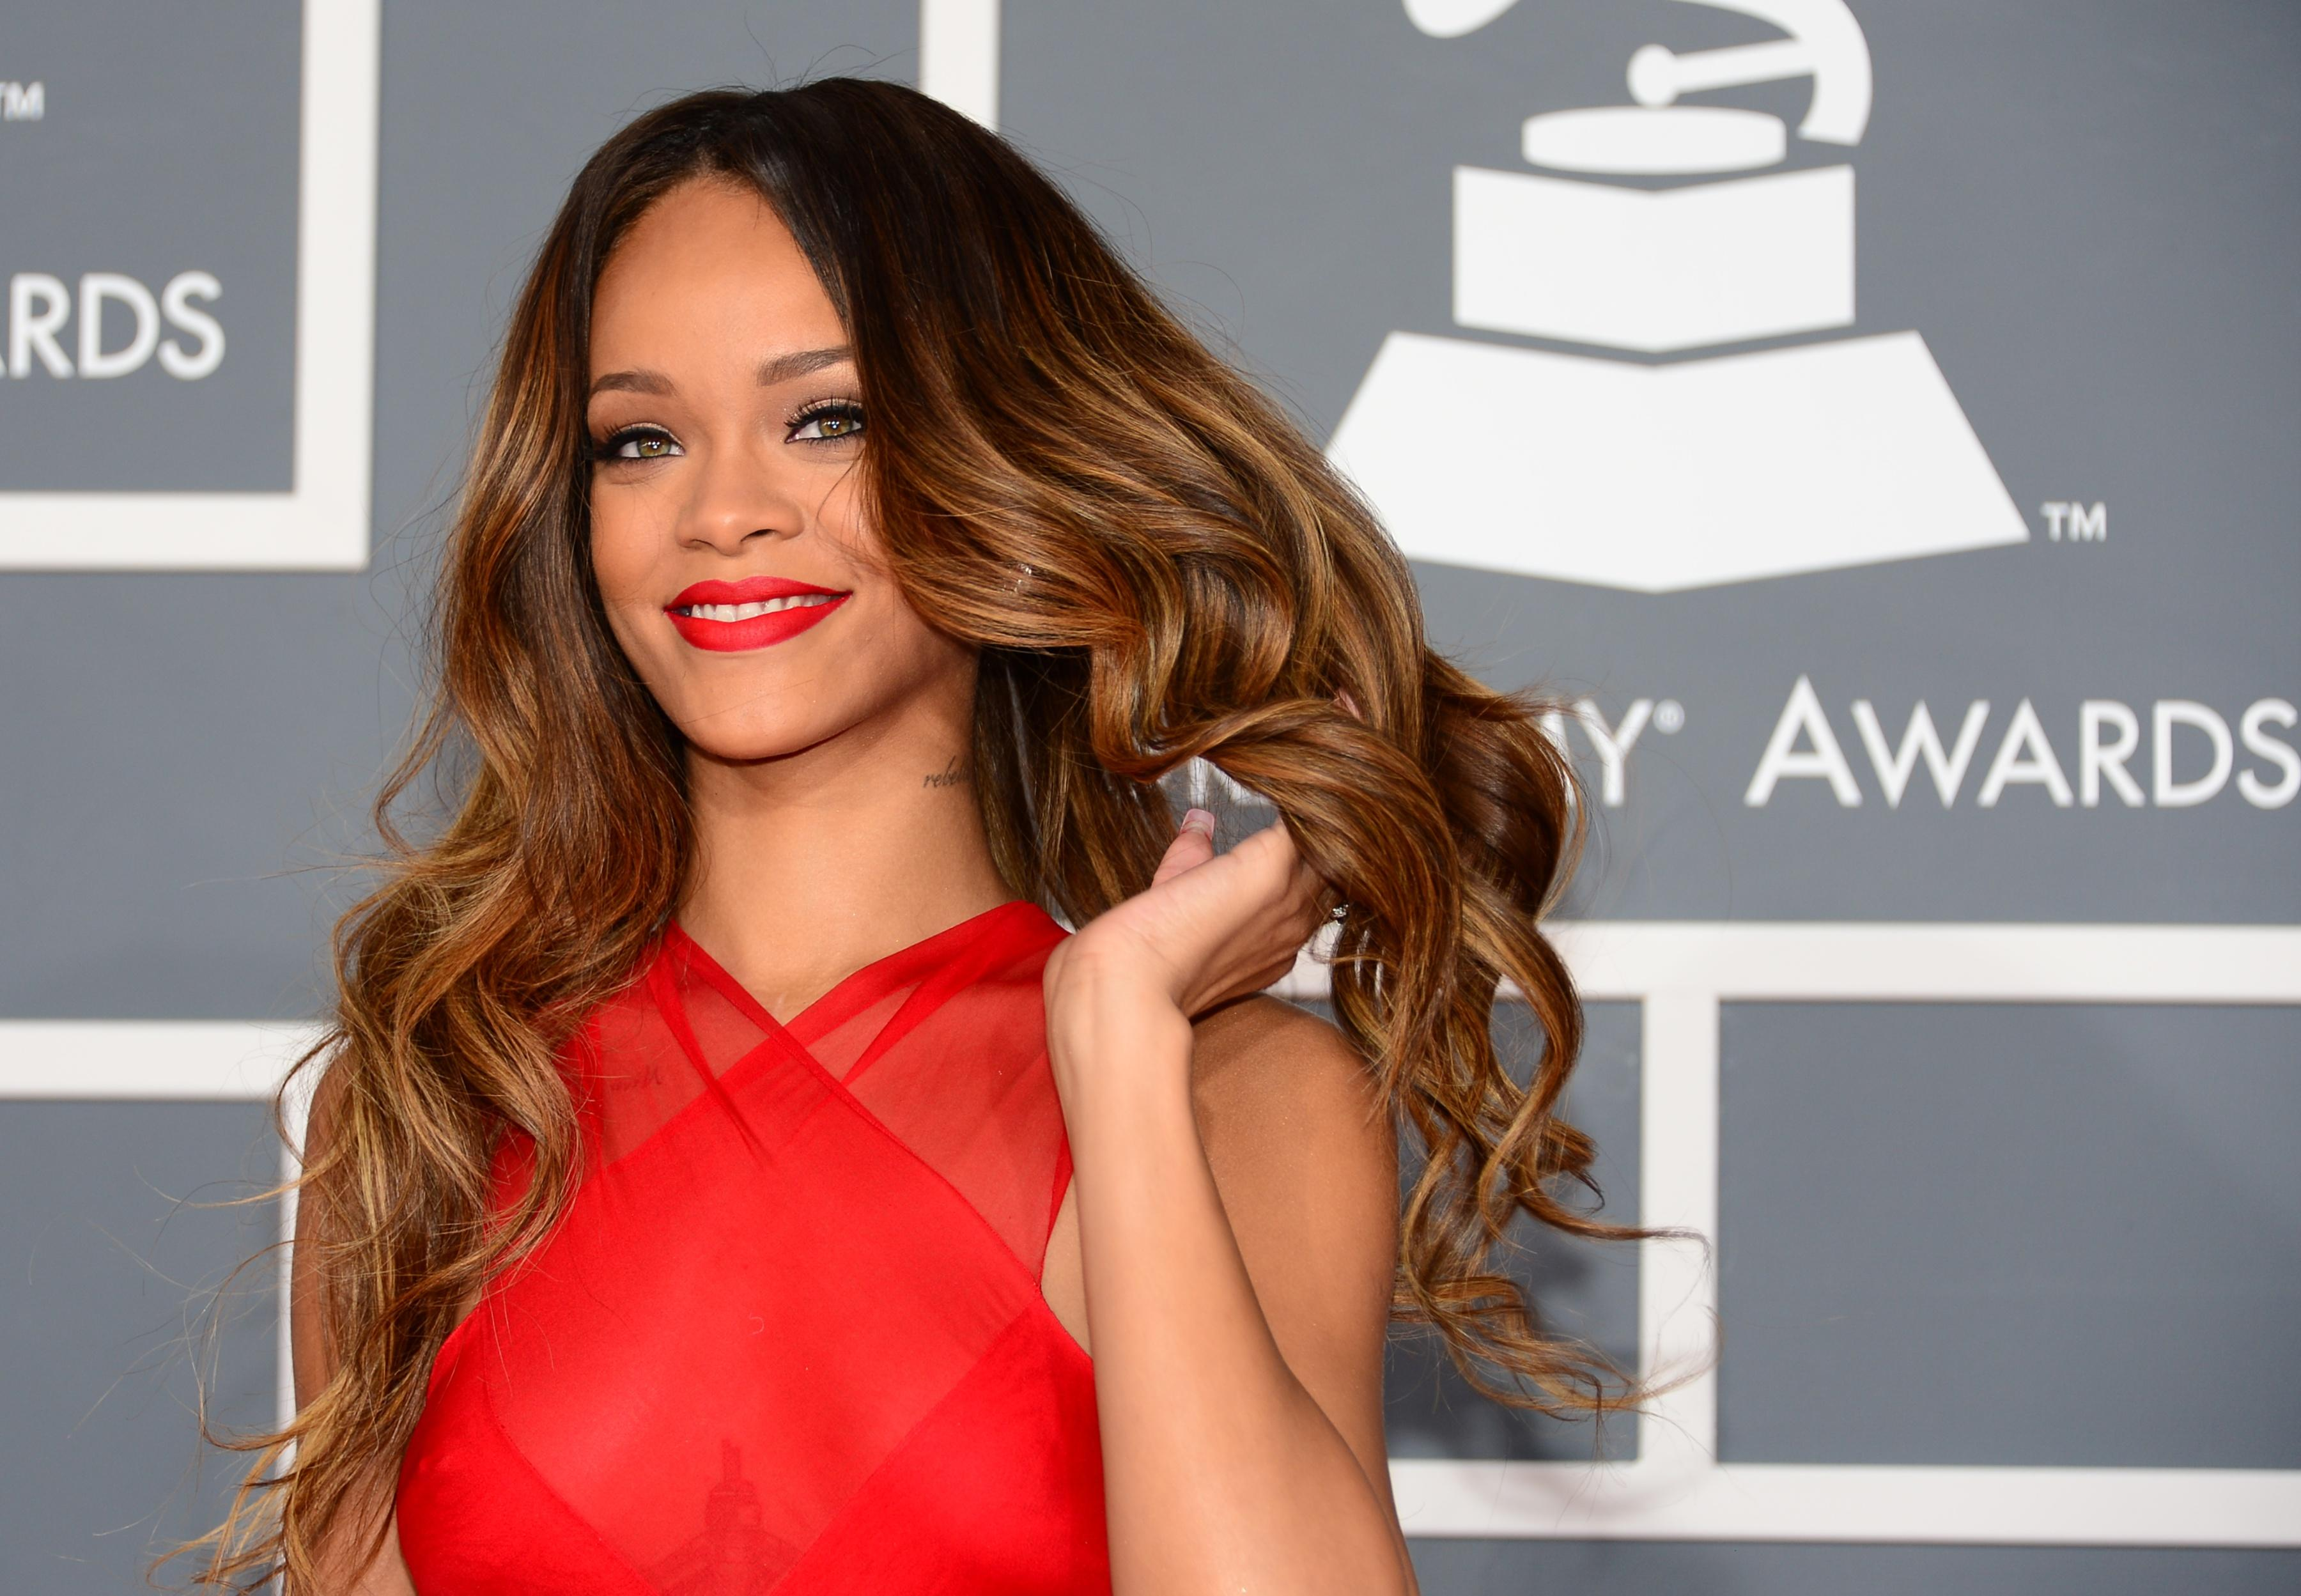 Rihanna on January 22, 2015 won her legal battle against clothes retailer Topshop over the use of her image on a t-shirt